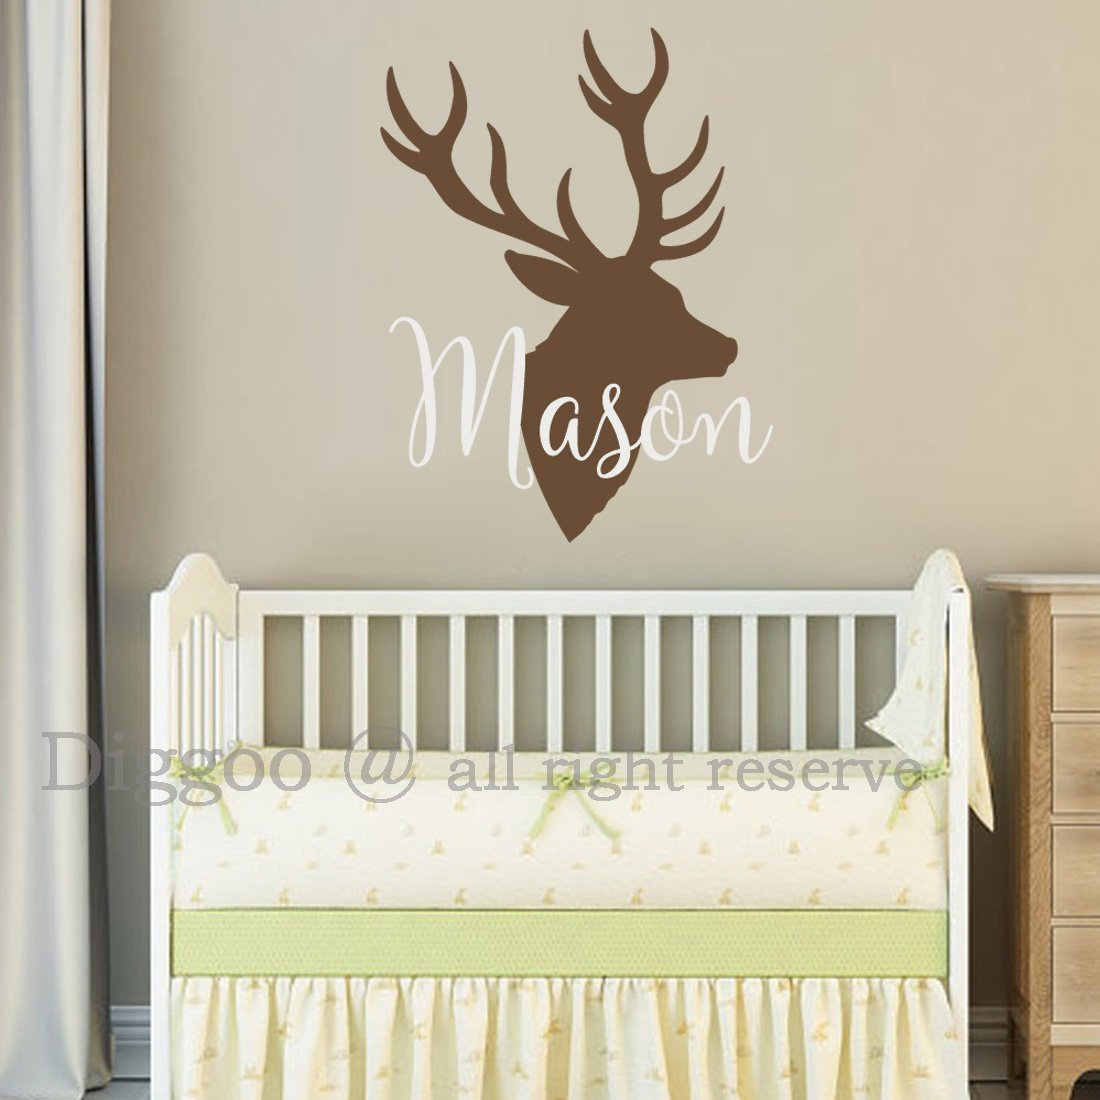 Personalized Deer Antlers Name Wall Decal, Custom Baby Name Hunting Deer Themed Boys Room Wall Decor Sticker, Rustic Nursery Decor (22'' h x 17'' w PLUS FREE WELCOME DOOR DECAL)